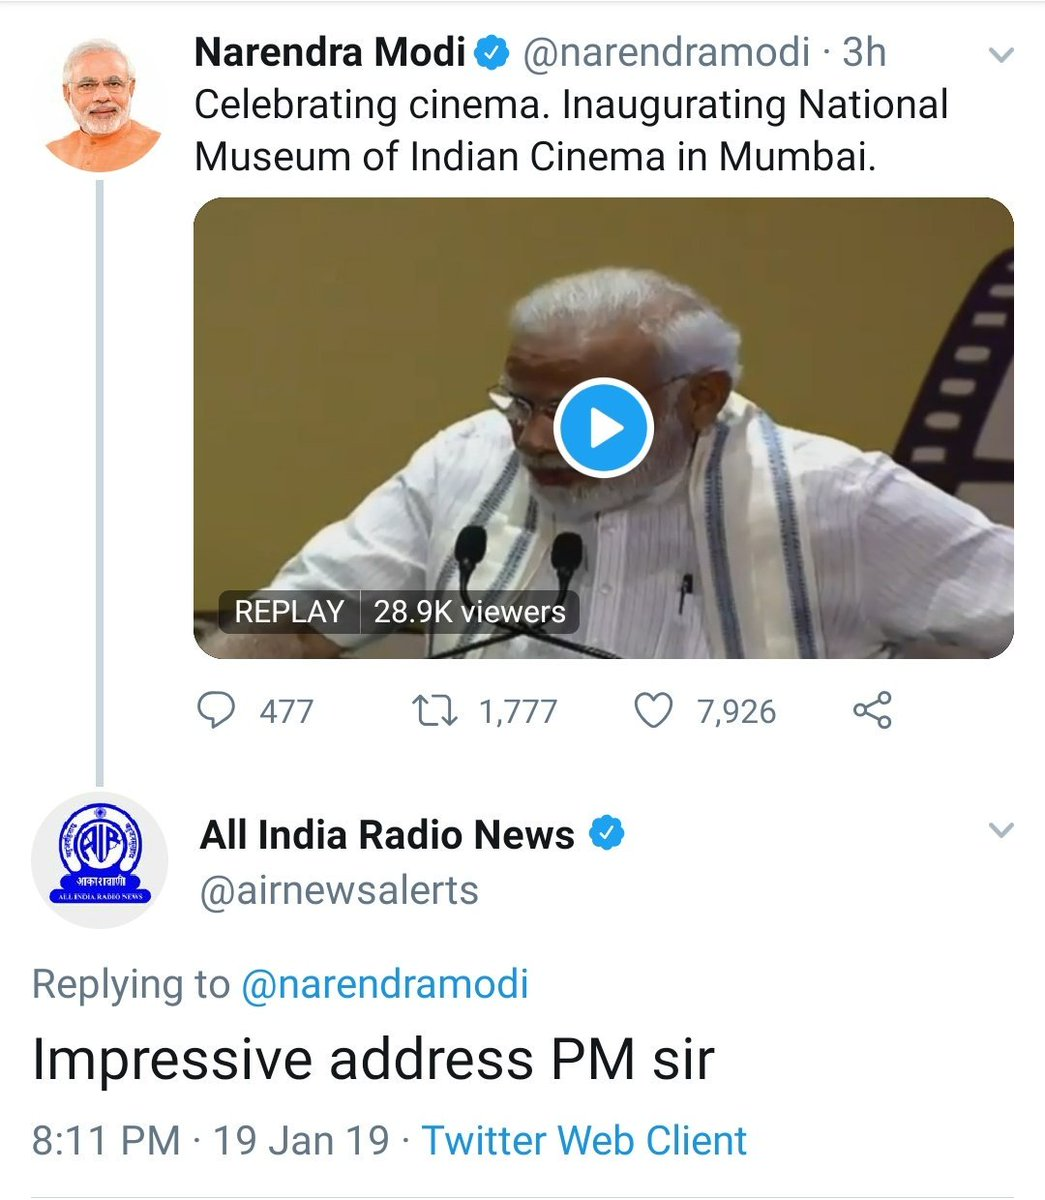 RT @scotchism: Offo... Repeat offender @airnewsalerts. Hope they don't block me again LOL https://t.co/t61t7cr8hD